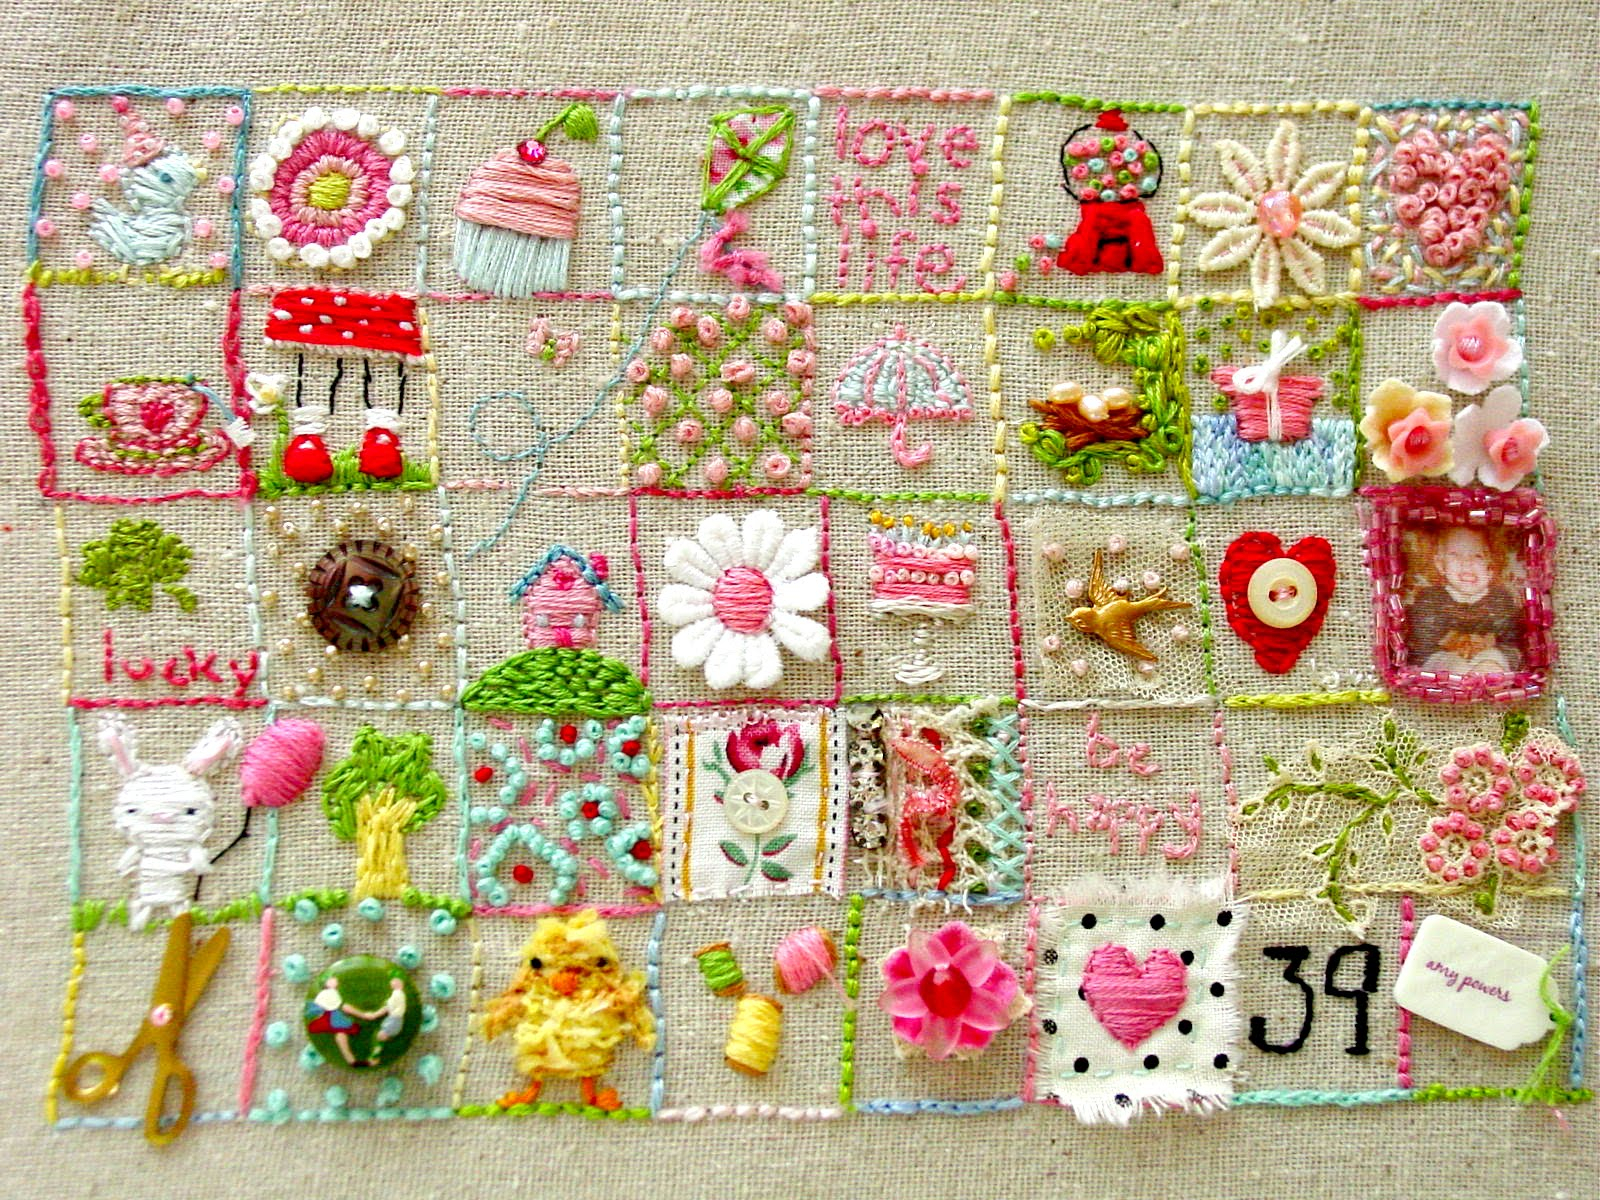 Embroidery Sampler Patterns Free Cross Stitch Embroidery Free Patterns Craftforest